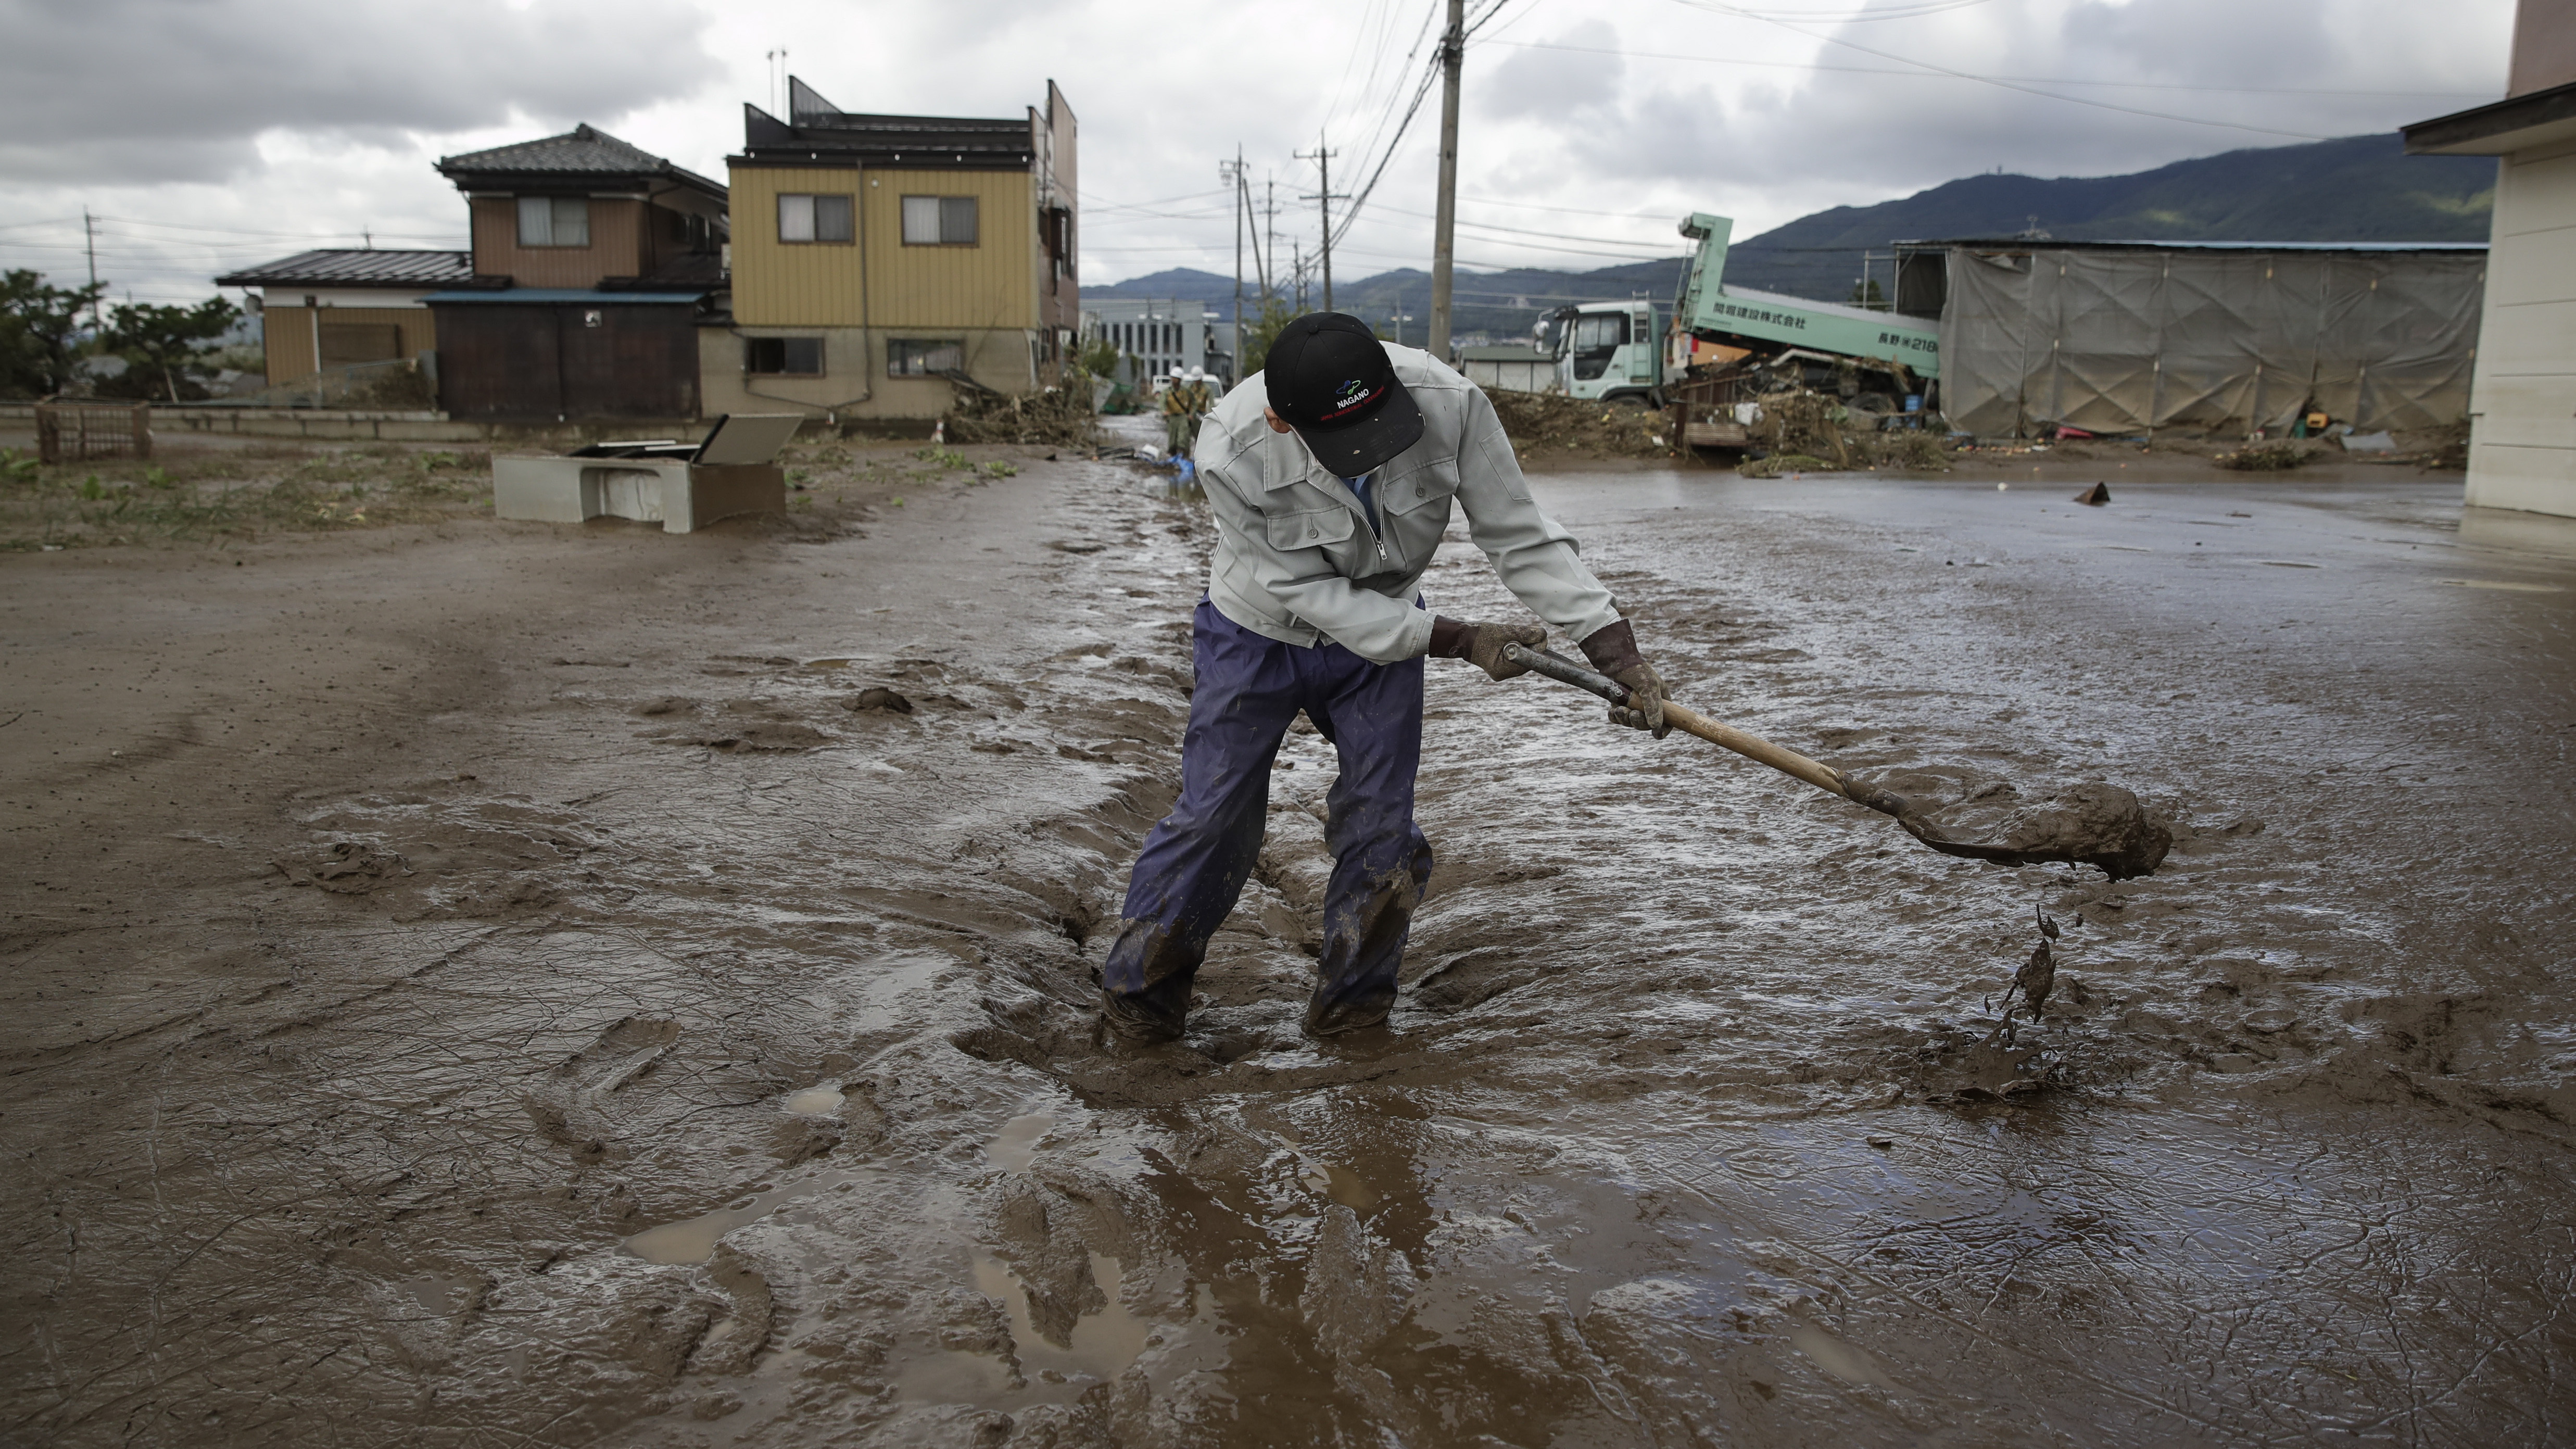 Japan's Prime Minister Warns Of 'Prolonged' Effects Of Typhoon Hagibis' Destruction